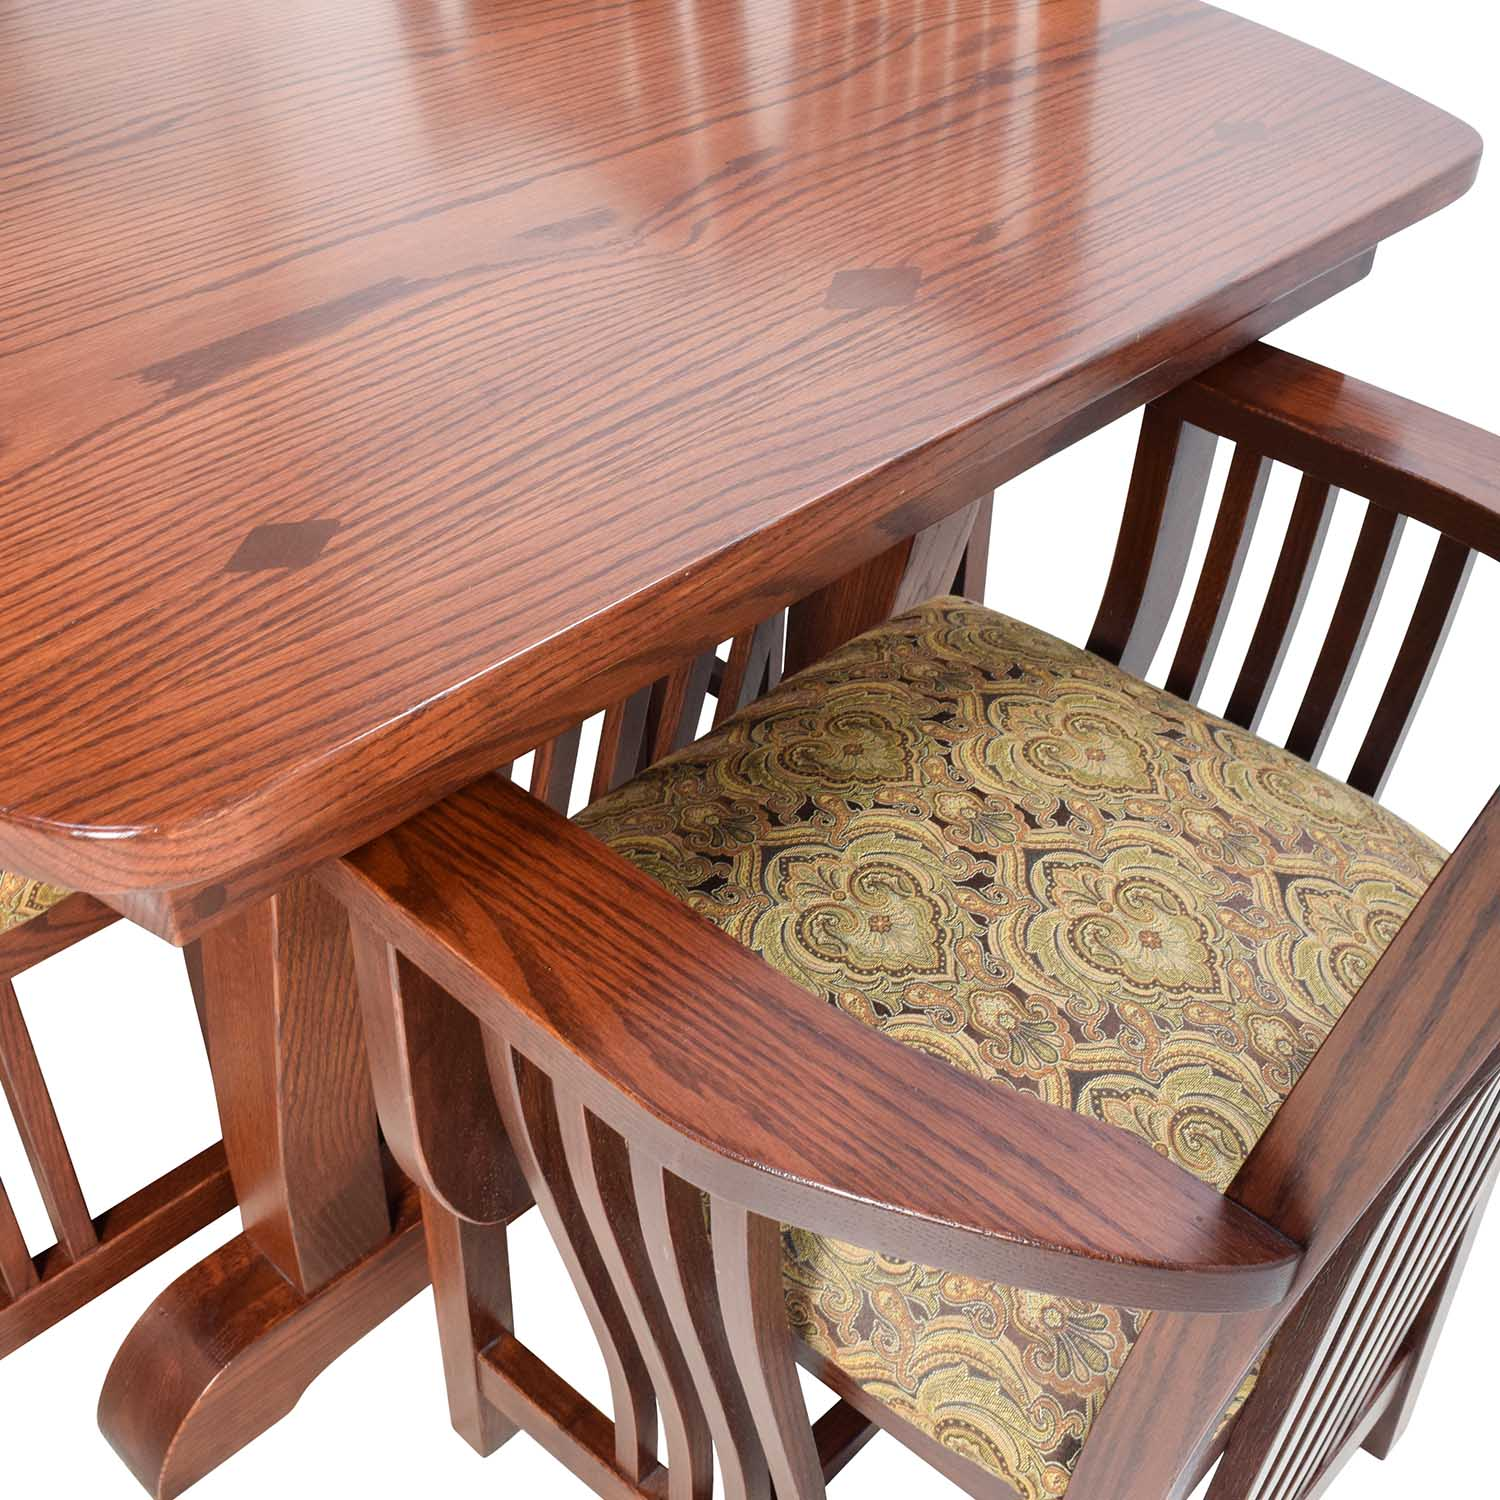 Homestead Furniture Homestead Furniture Classic Mission Solid Oak Dining Set used